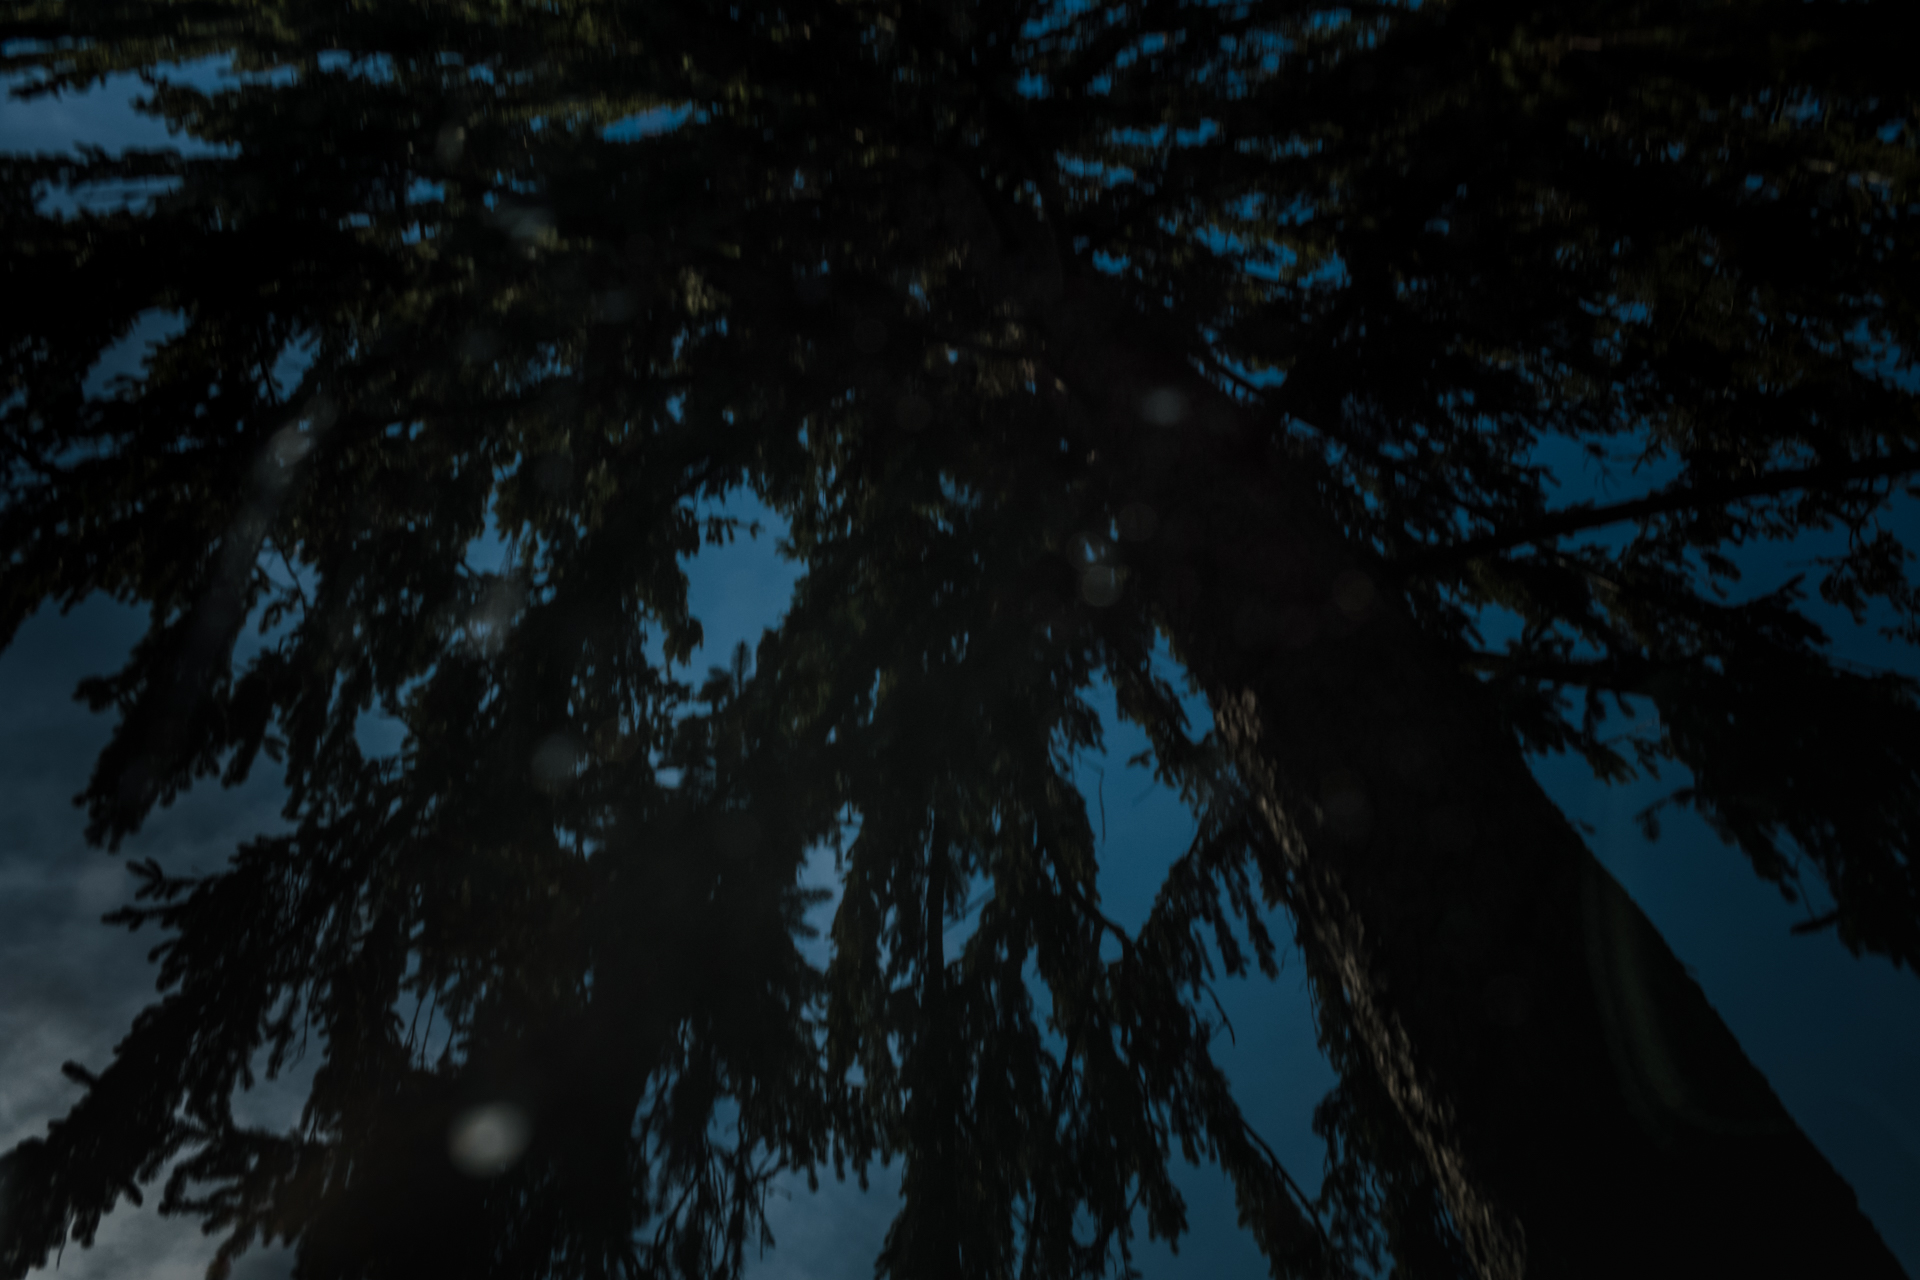 The Trees Have Arms by Denise Laurinaitis